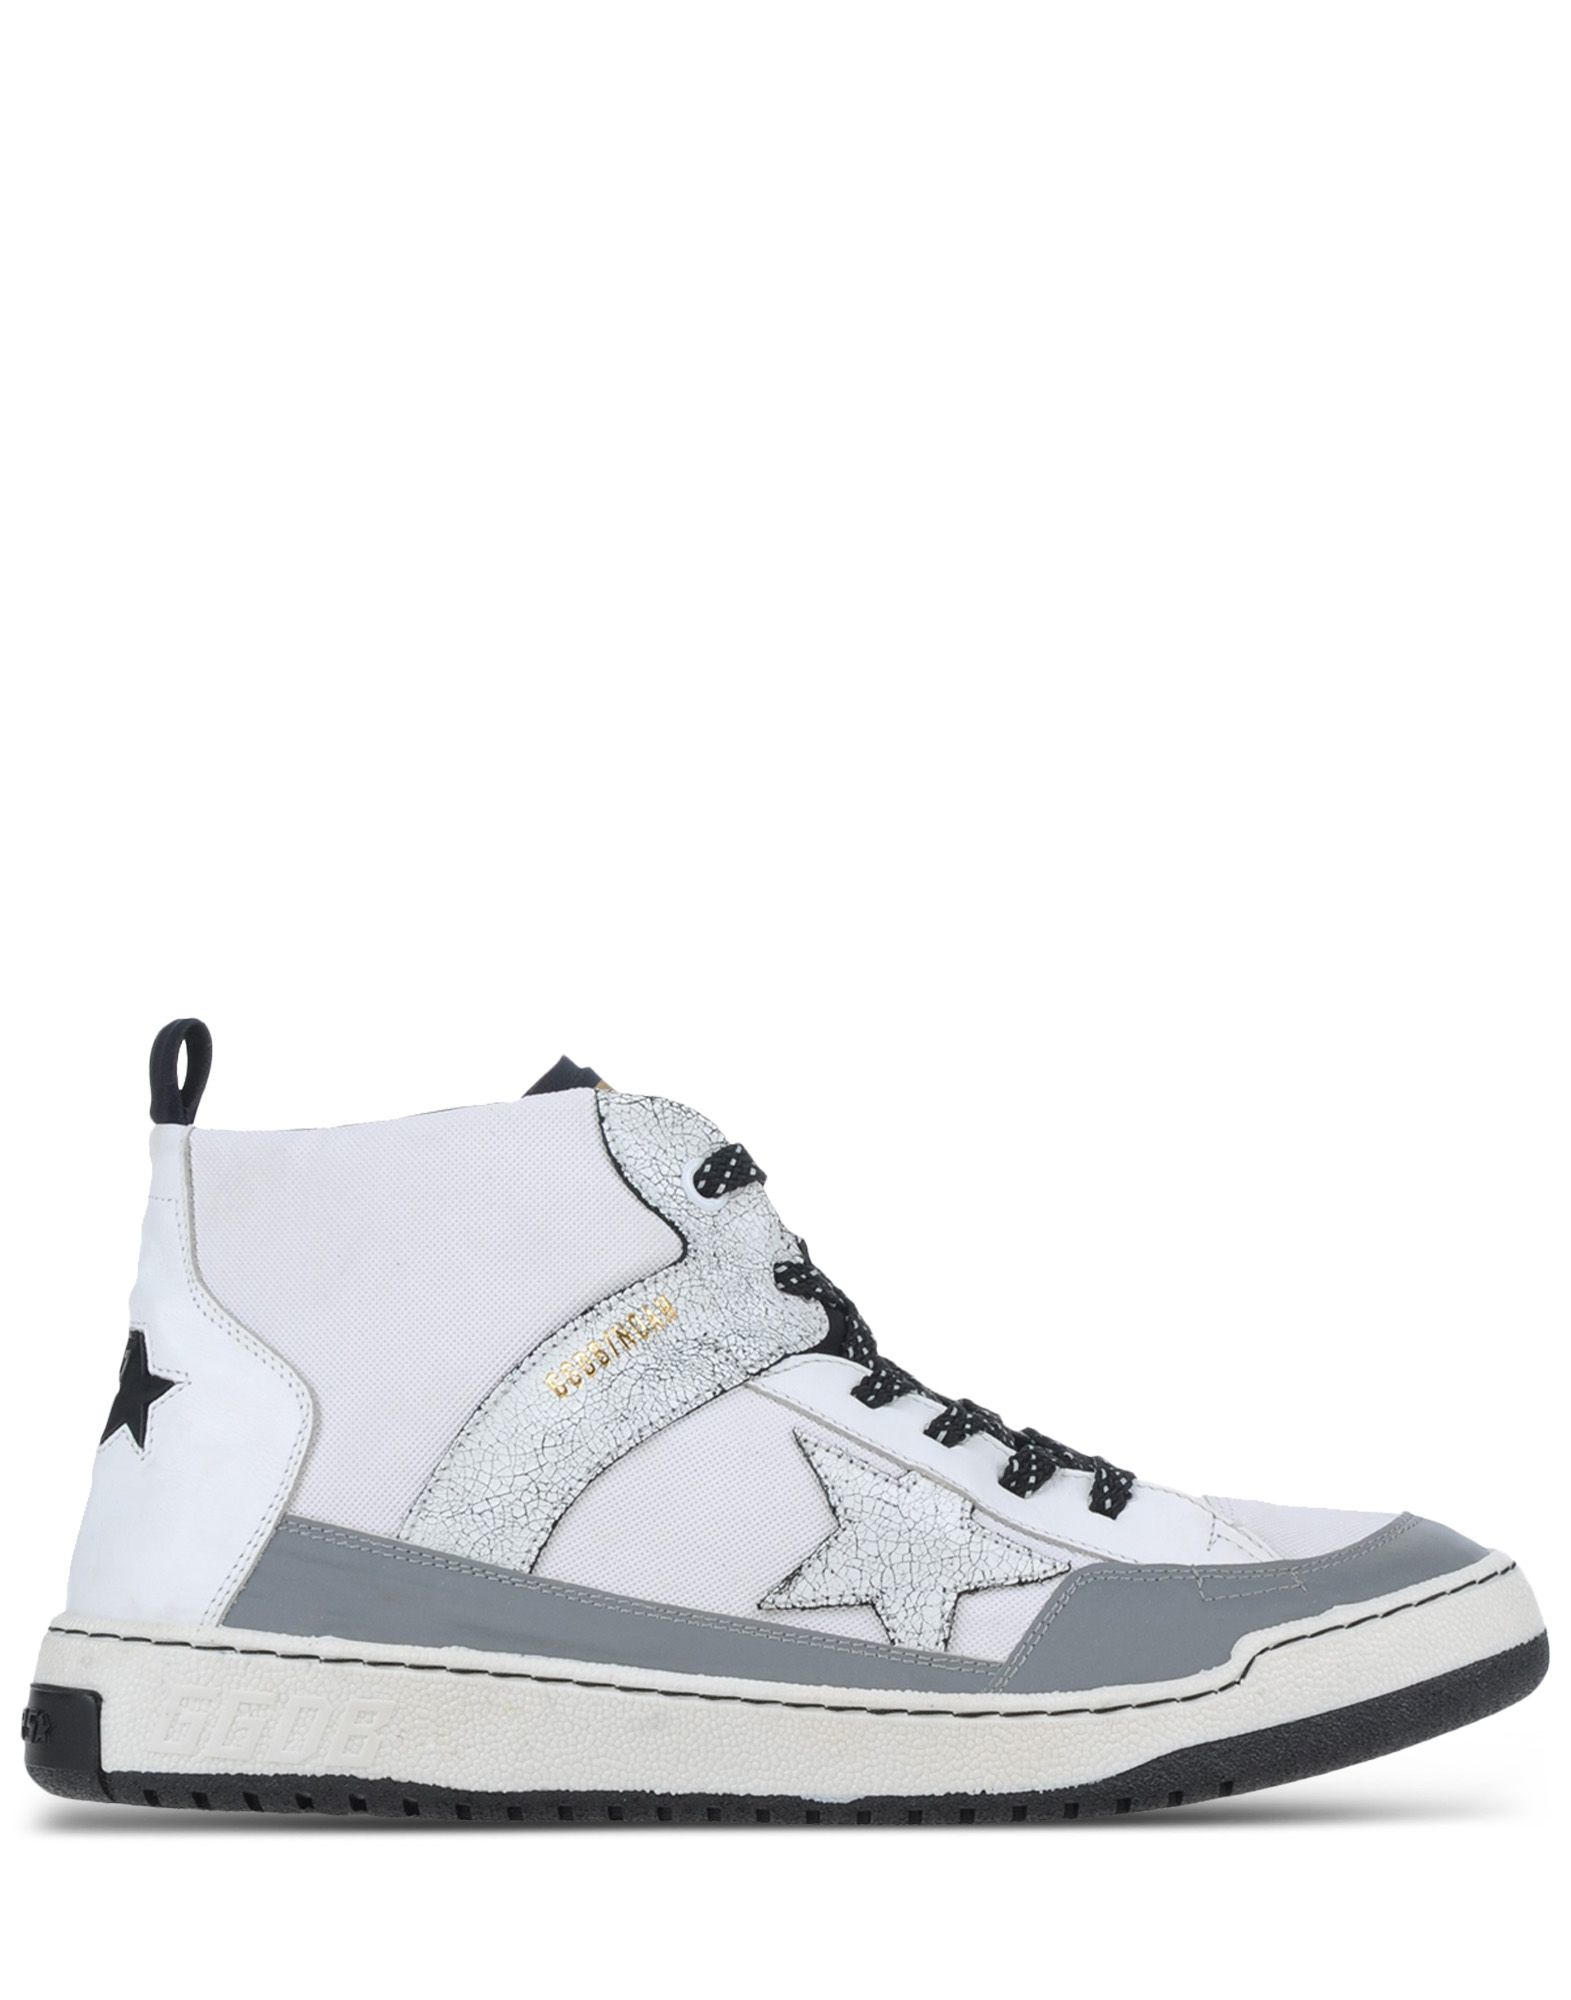 golden goose deluxe brand high top sneakers in white for men lyst. Black Bedroom Furniture Sets. Home Design Ideas